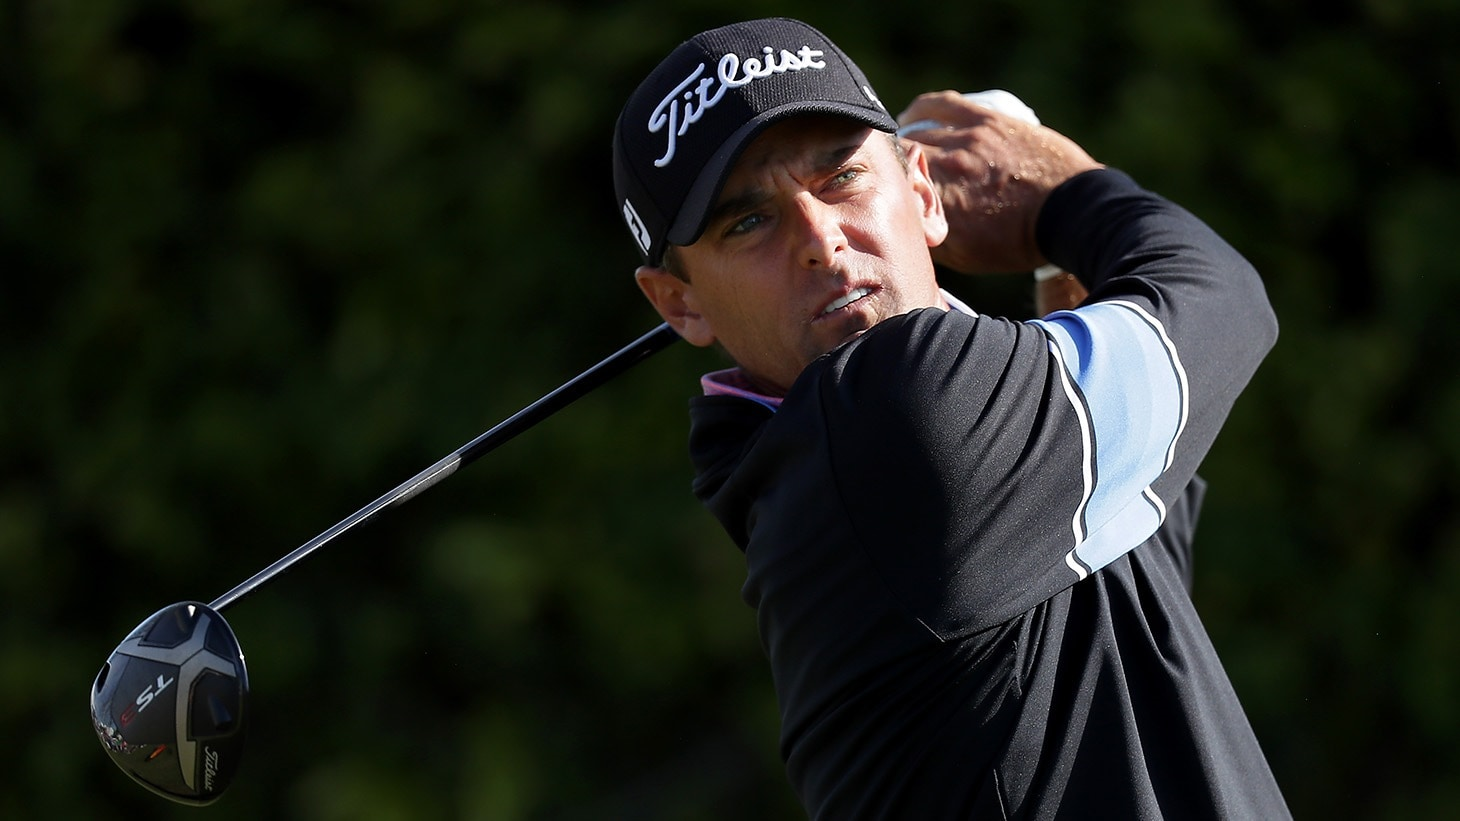 Charles Howell III tees off with the Titleist TS3 driver